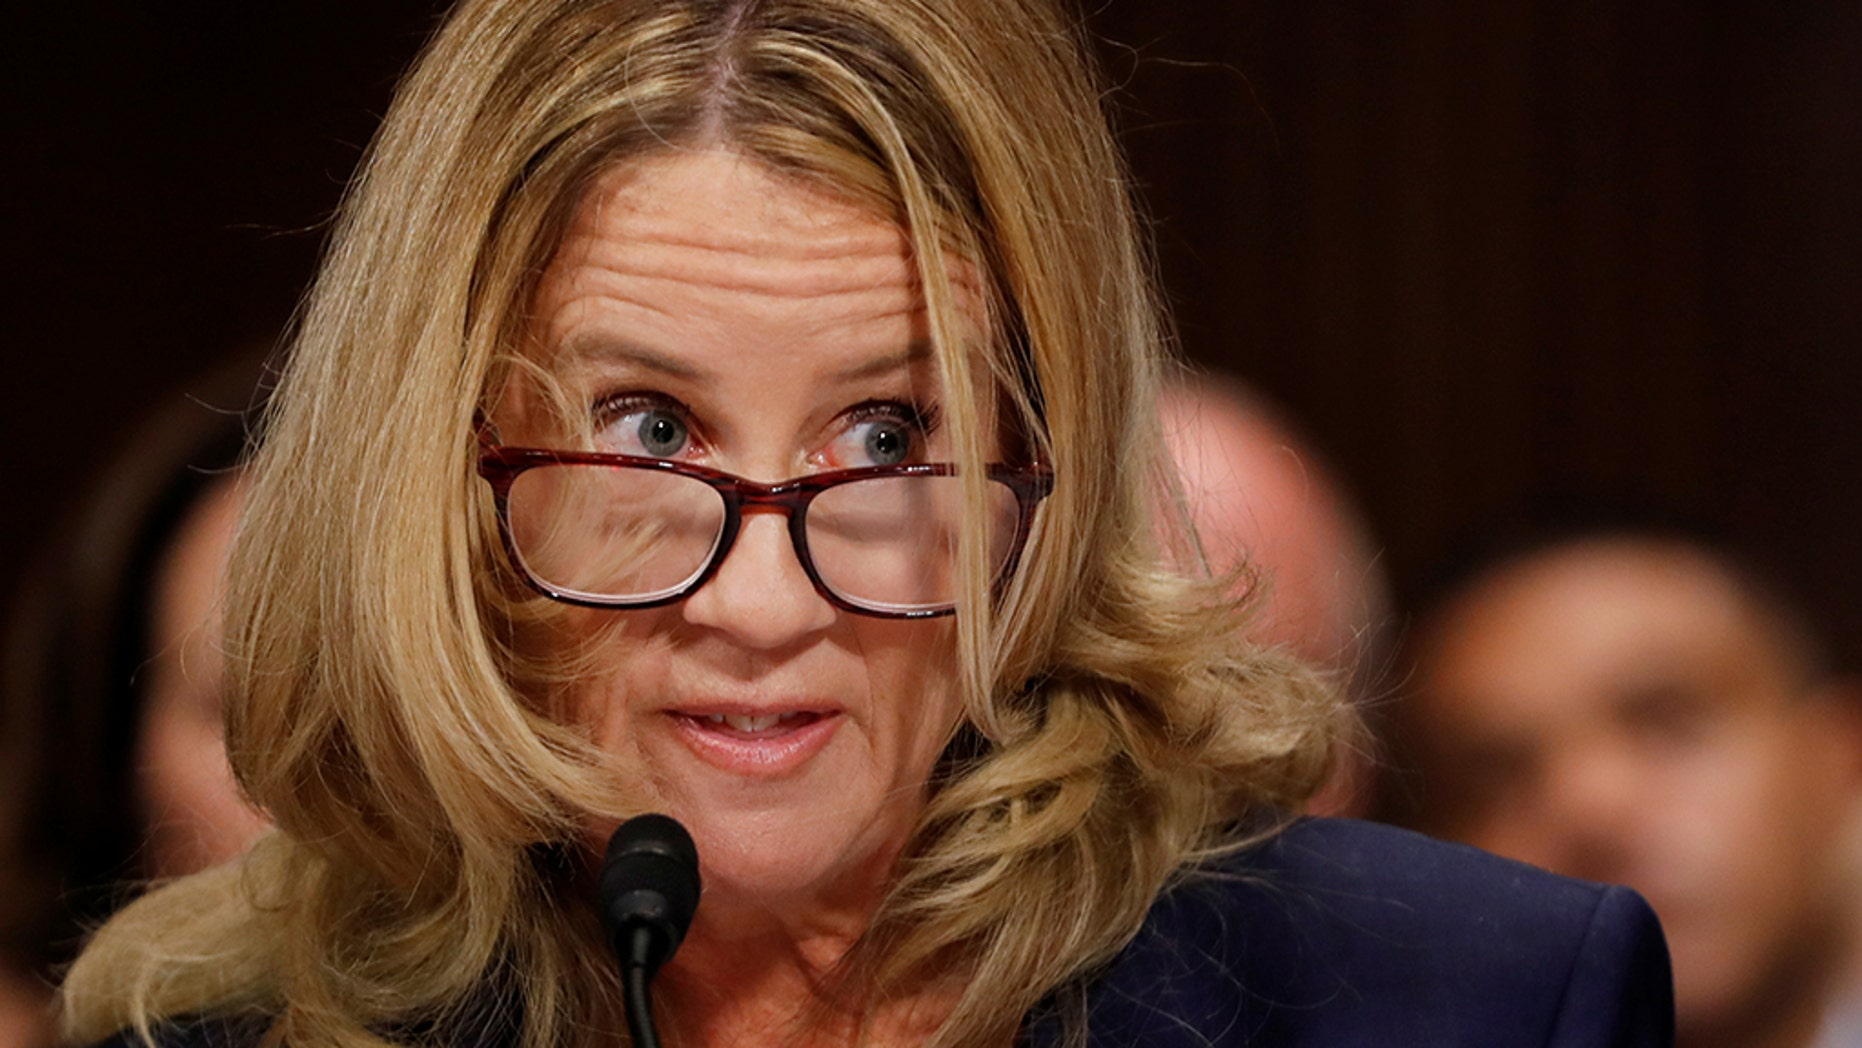 Professor Christine Blasey Ford, who has accused U.S. Supreme Court nominee Brett Kavanaugh of a sexual assault in 1982, listens while testifying before a Senate Judiciary Committee confirmation hearing for Kavanaugh on Capitol Hill in Washington, U.S., September 27, 2018.